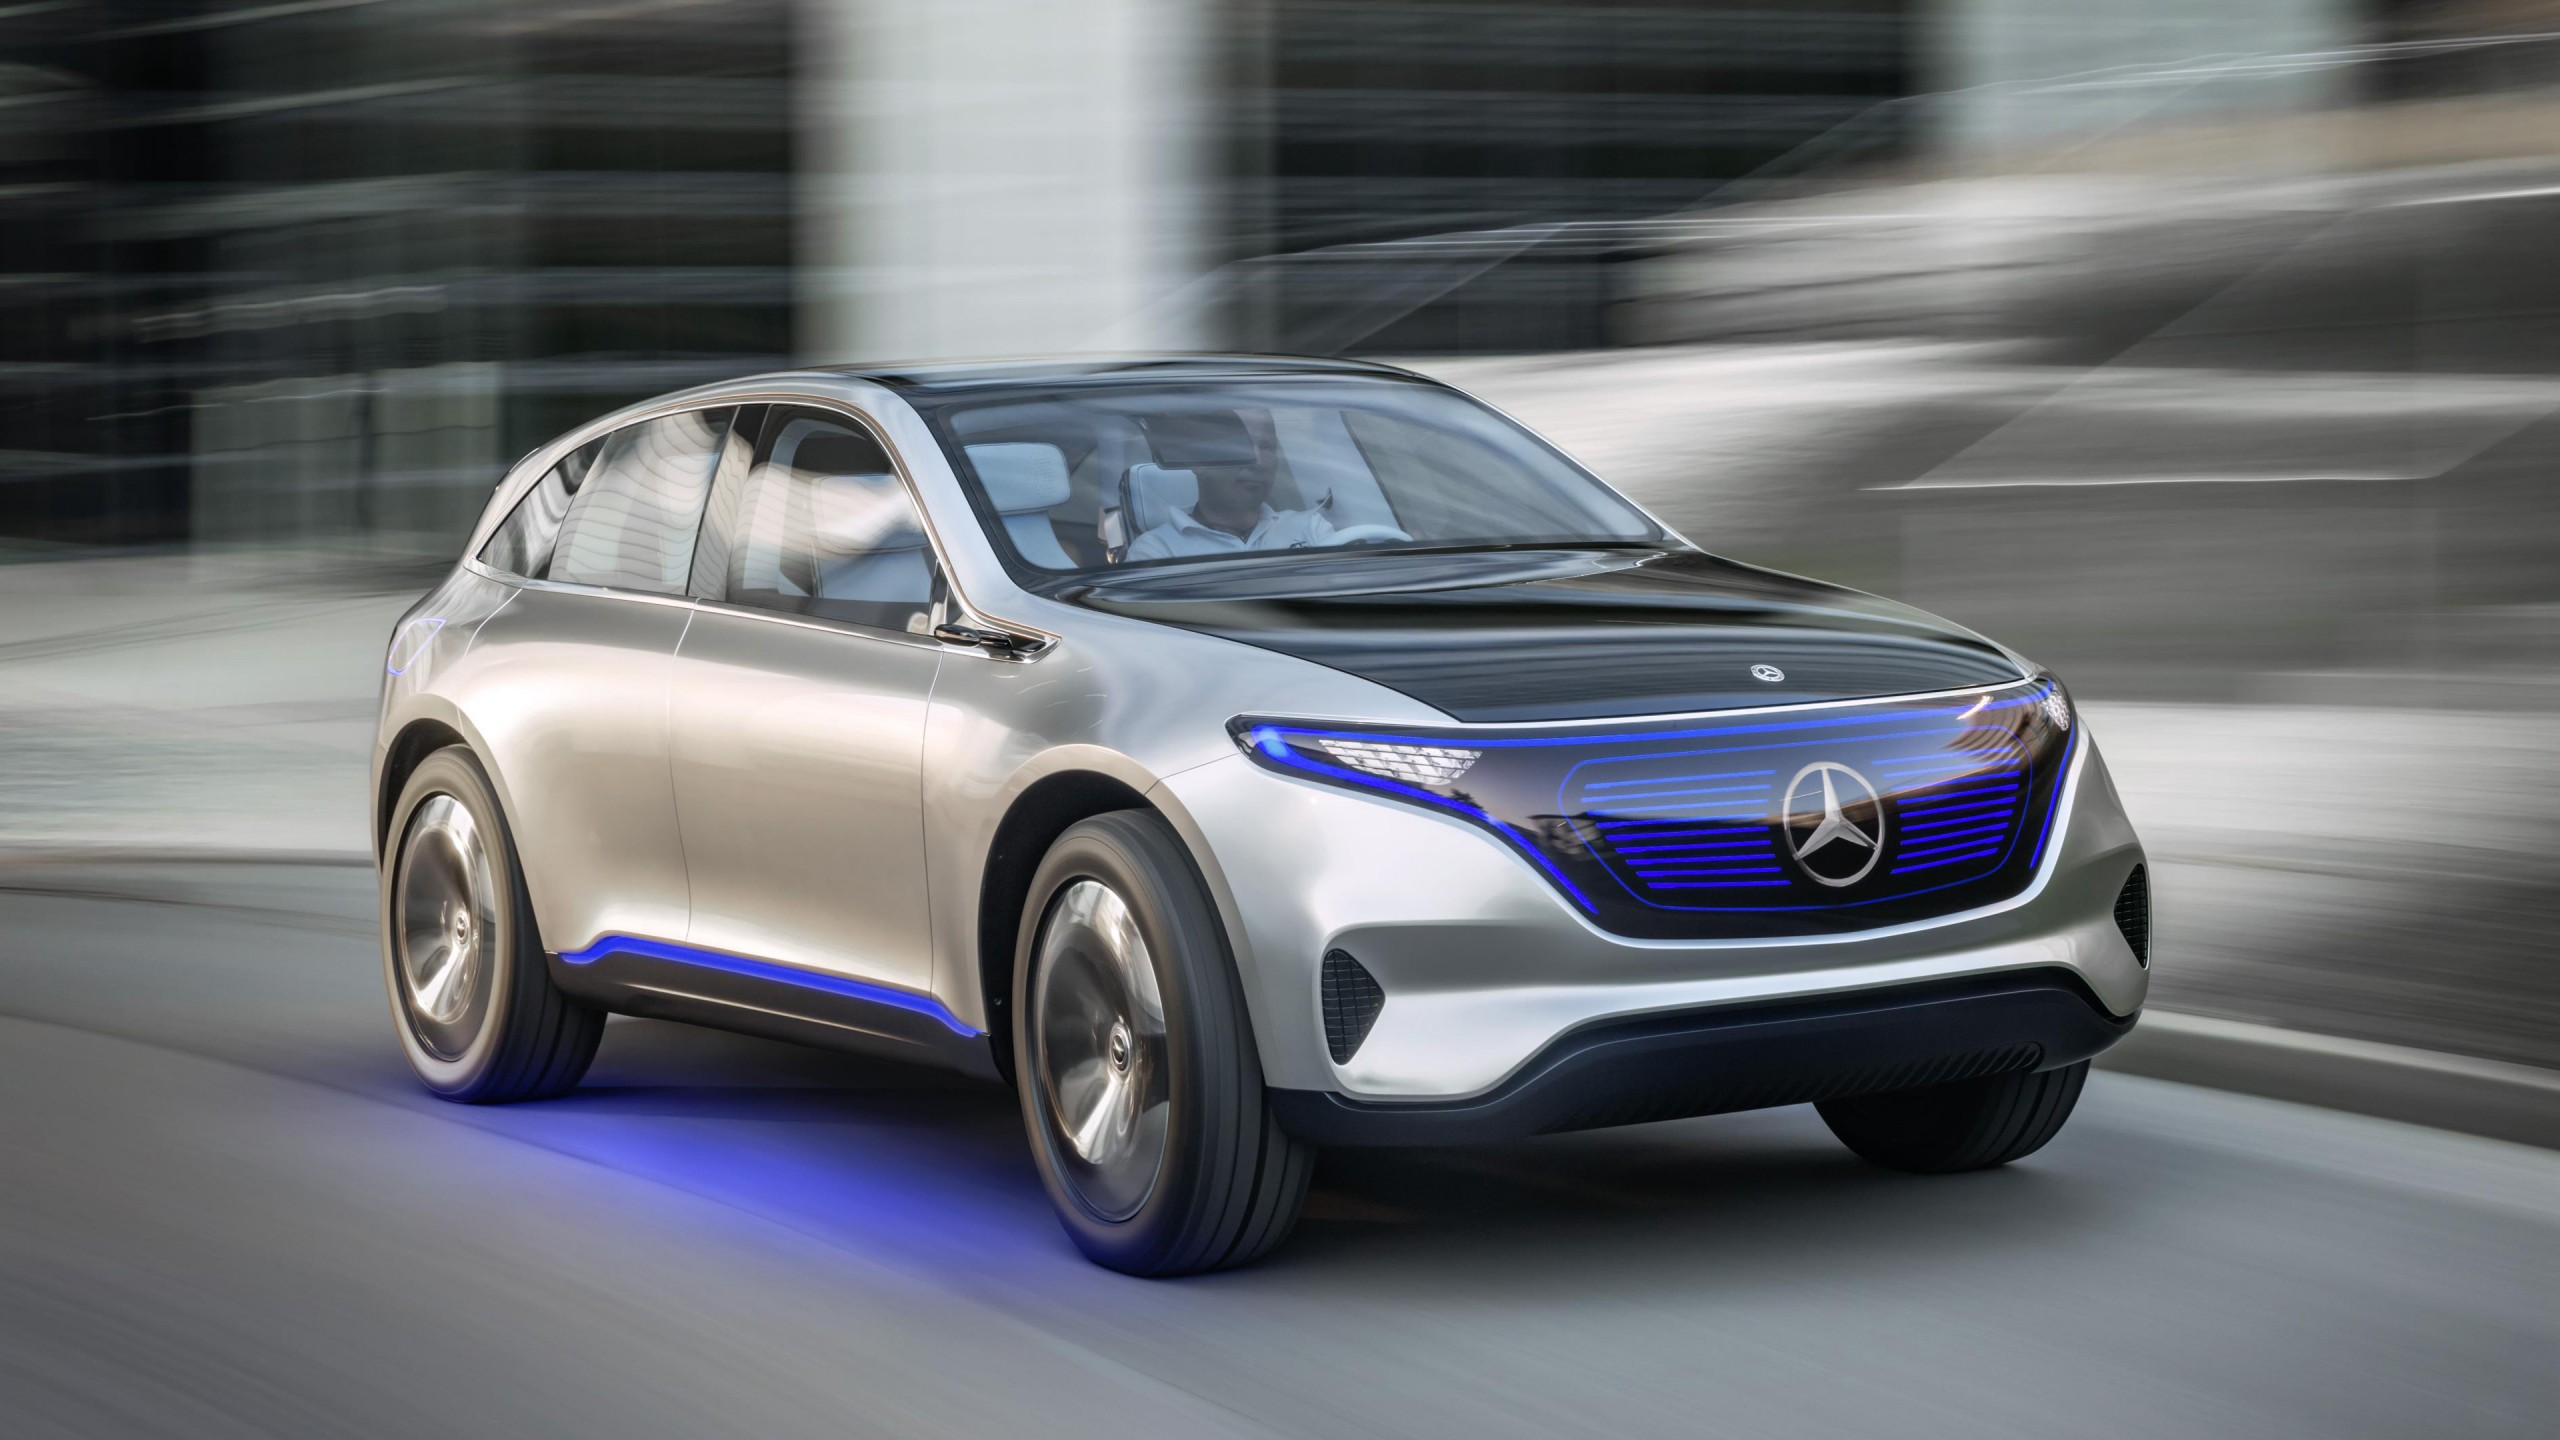 Mercedes benz eq electric suv 4k wallpaper hd car wallpapers for Mercedes benz small car